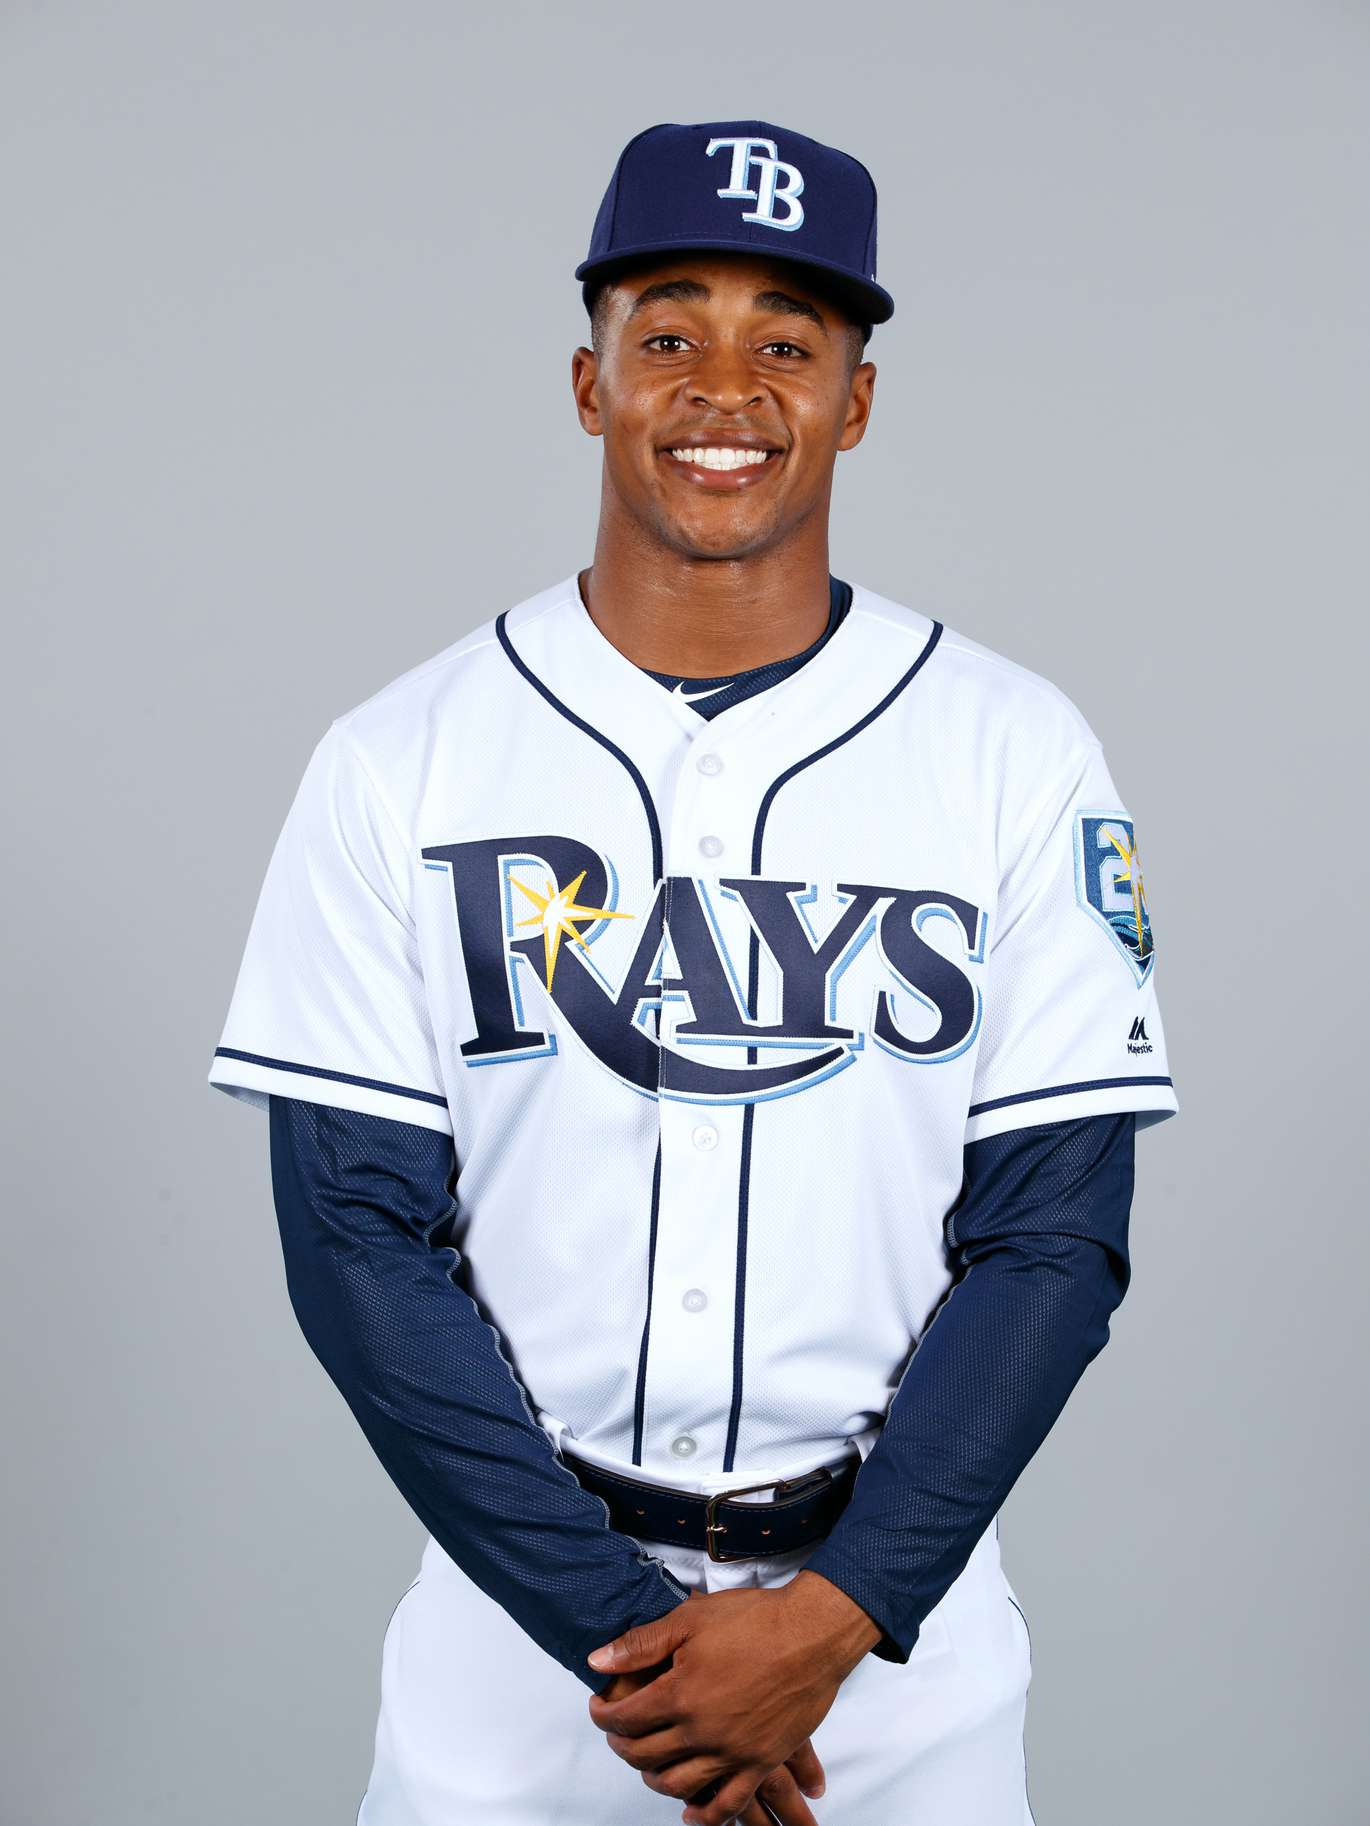 10. Mallex Smith, of, No. 0: Seems odd to be this high, but Rays are committed to giving him chance early to show he can not just start but be an impact player.